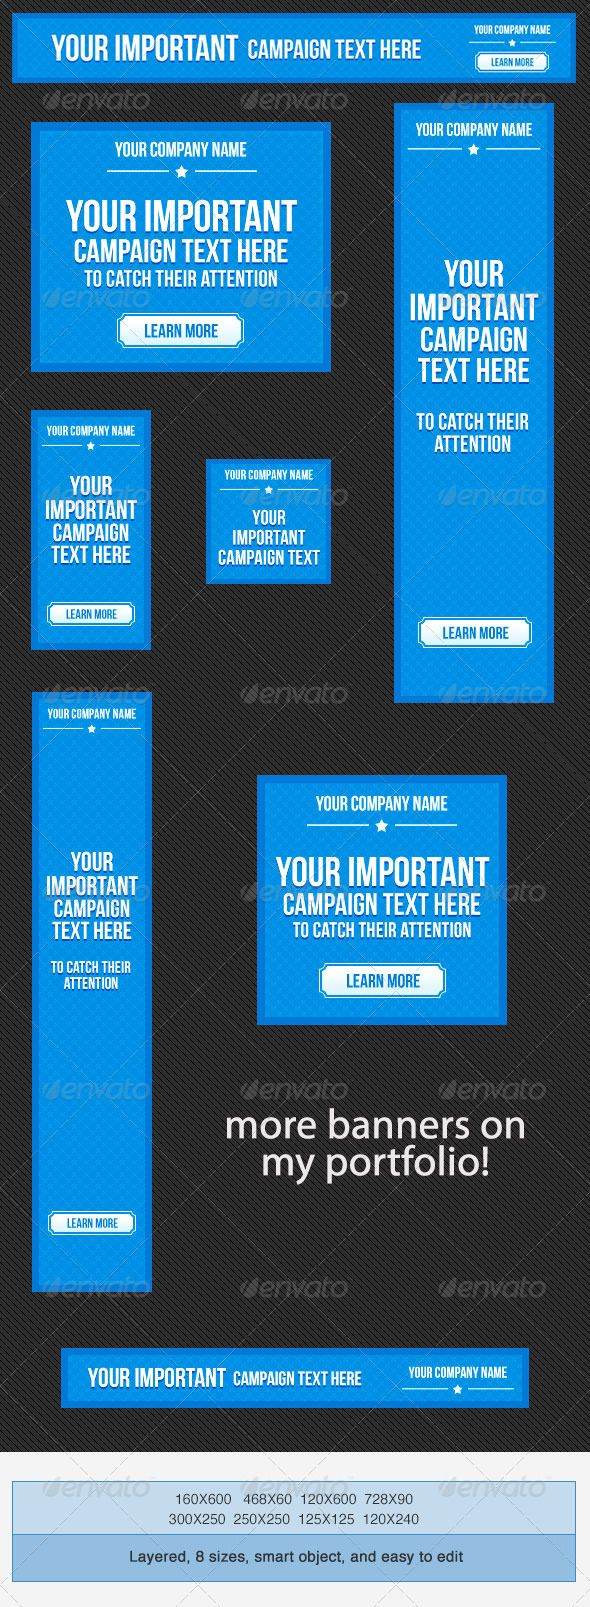 here s another set of psd banner ad template for general web